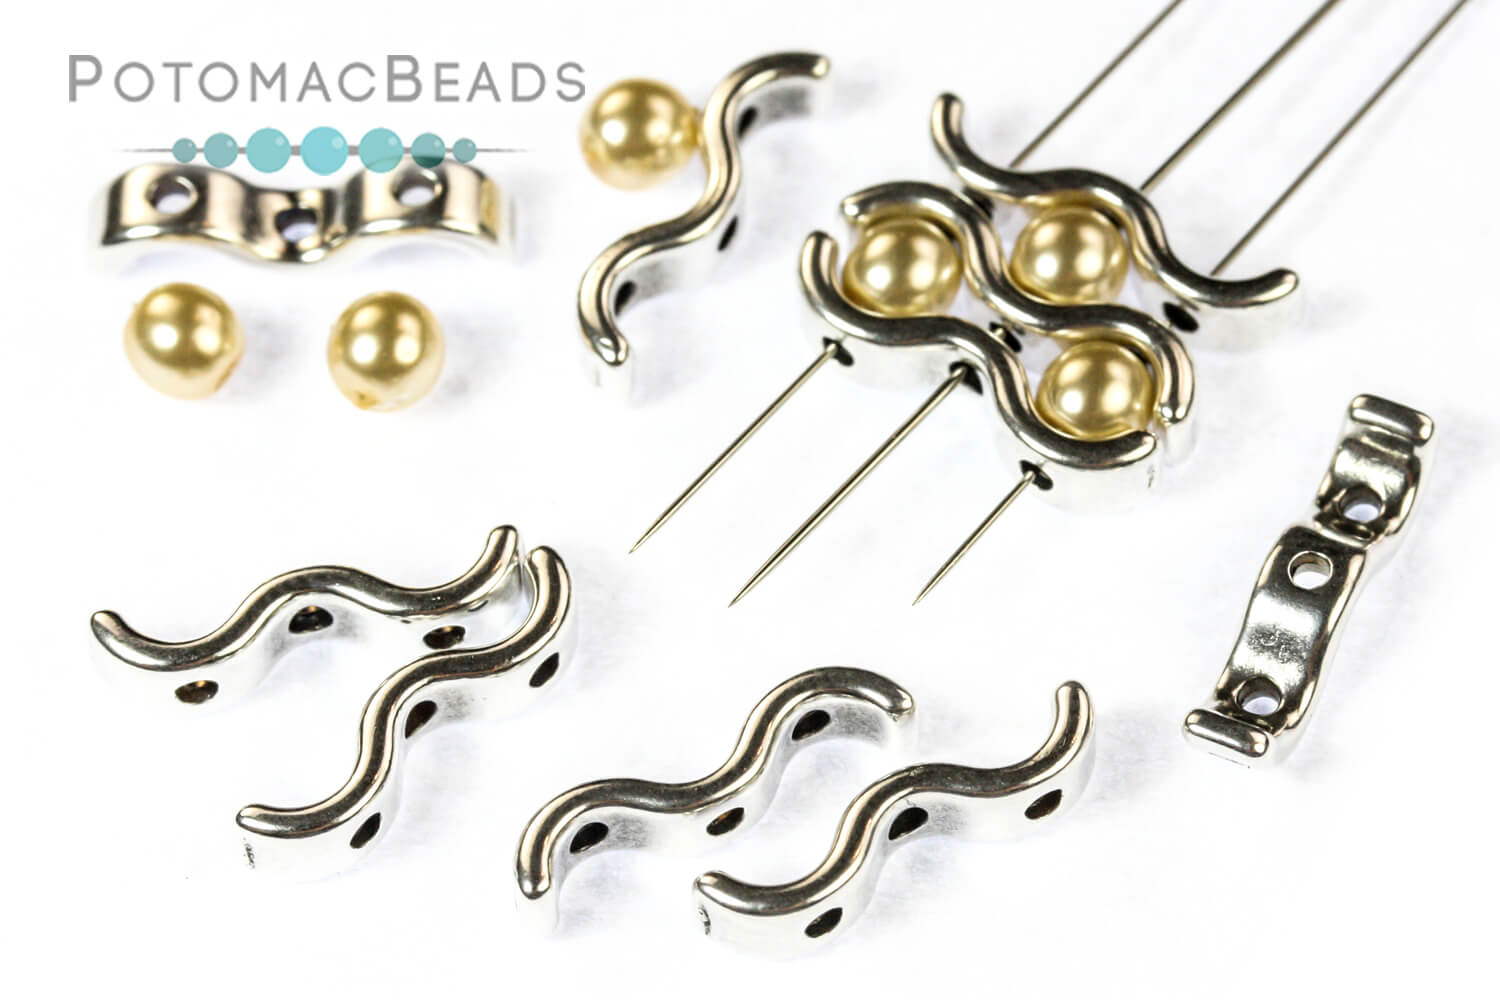 Other Beads & Supplies / Metal Beads & Findings / Potomax Metal Multi-Hole Beads / WaveTrio